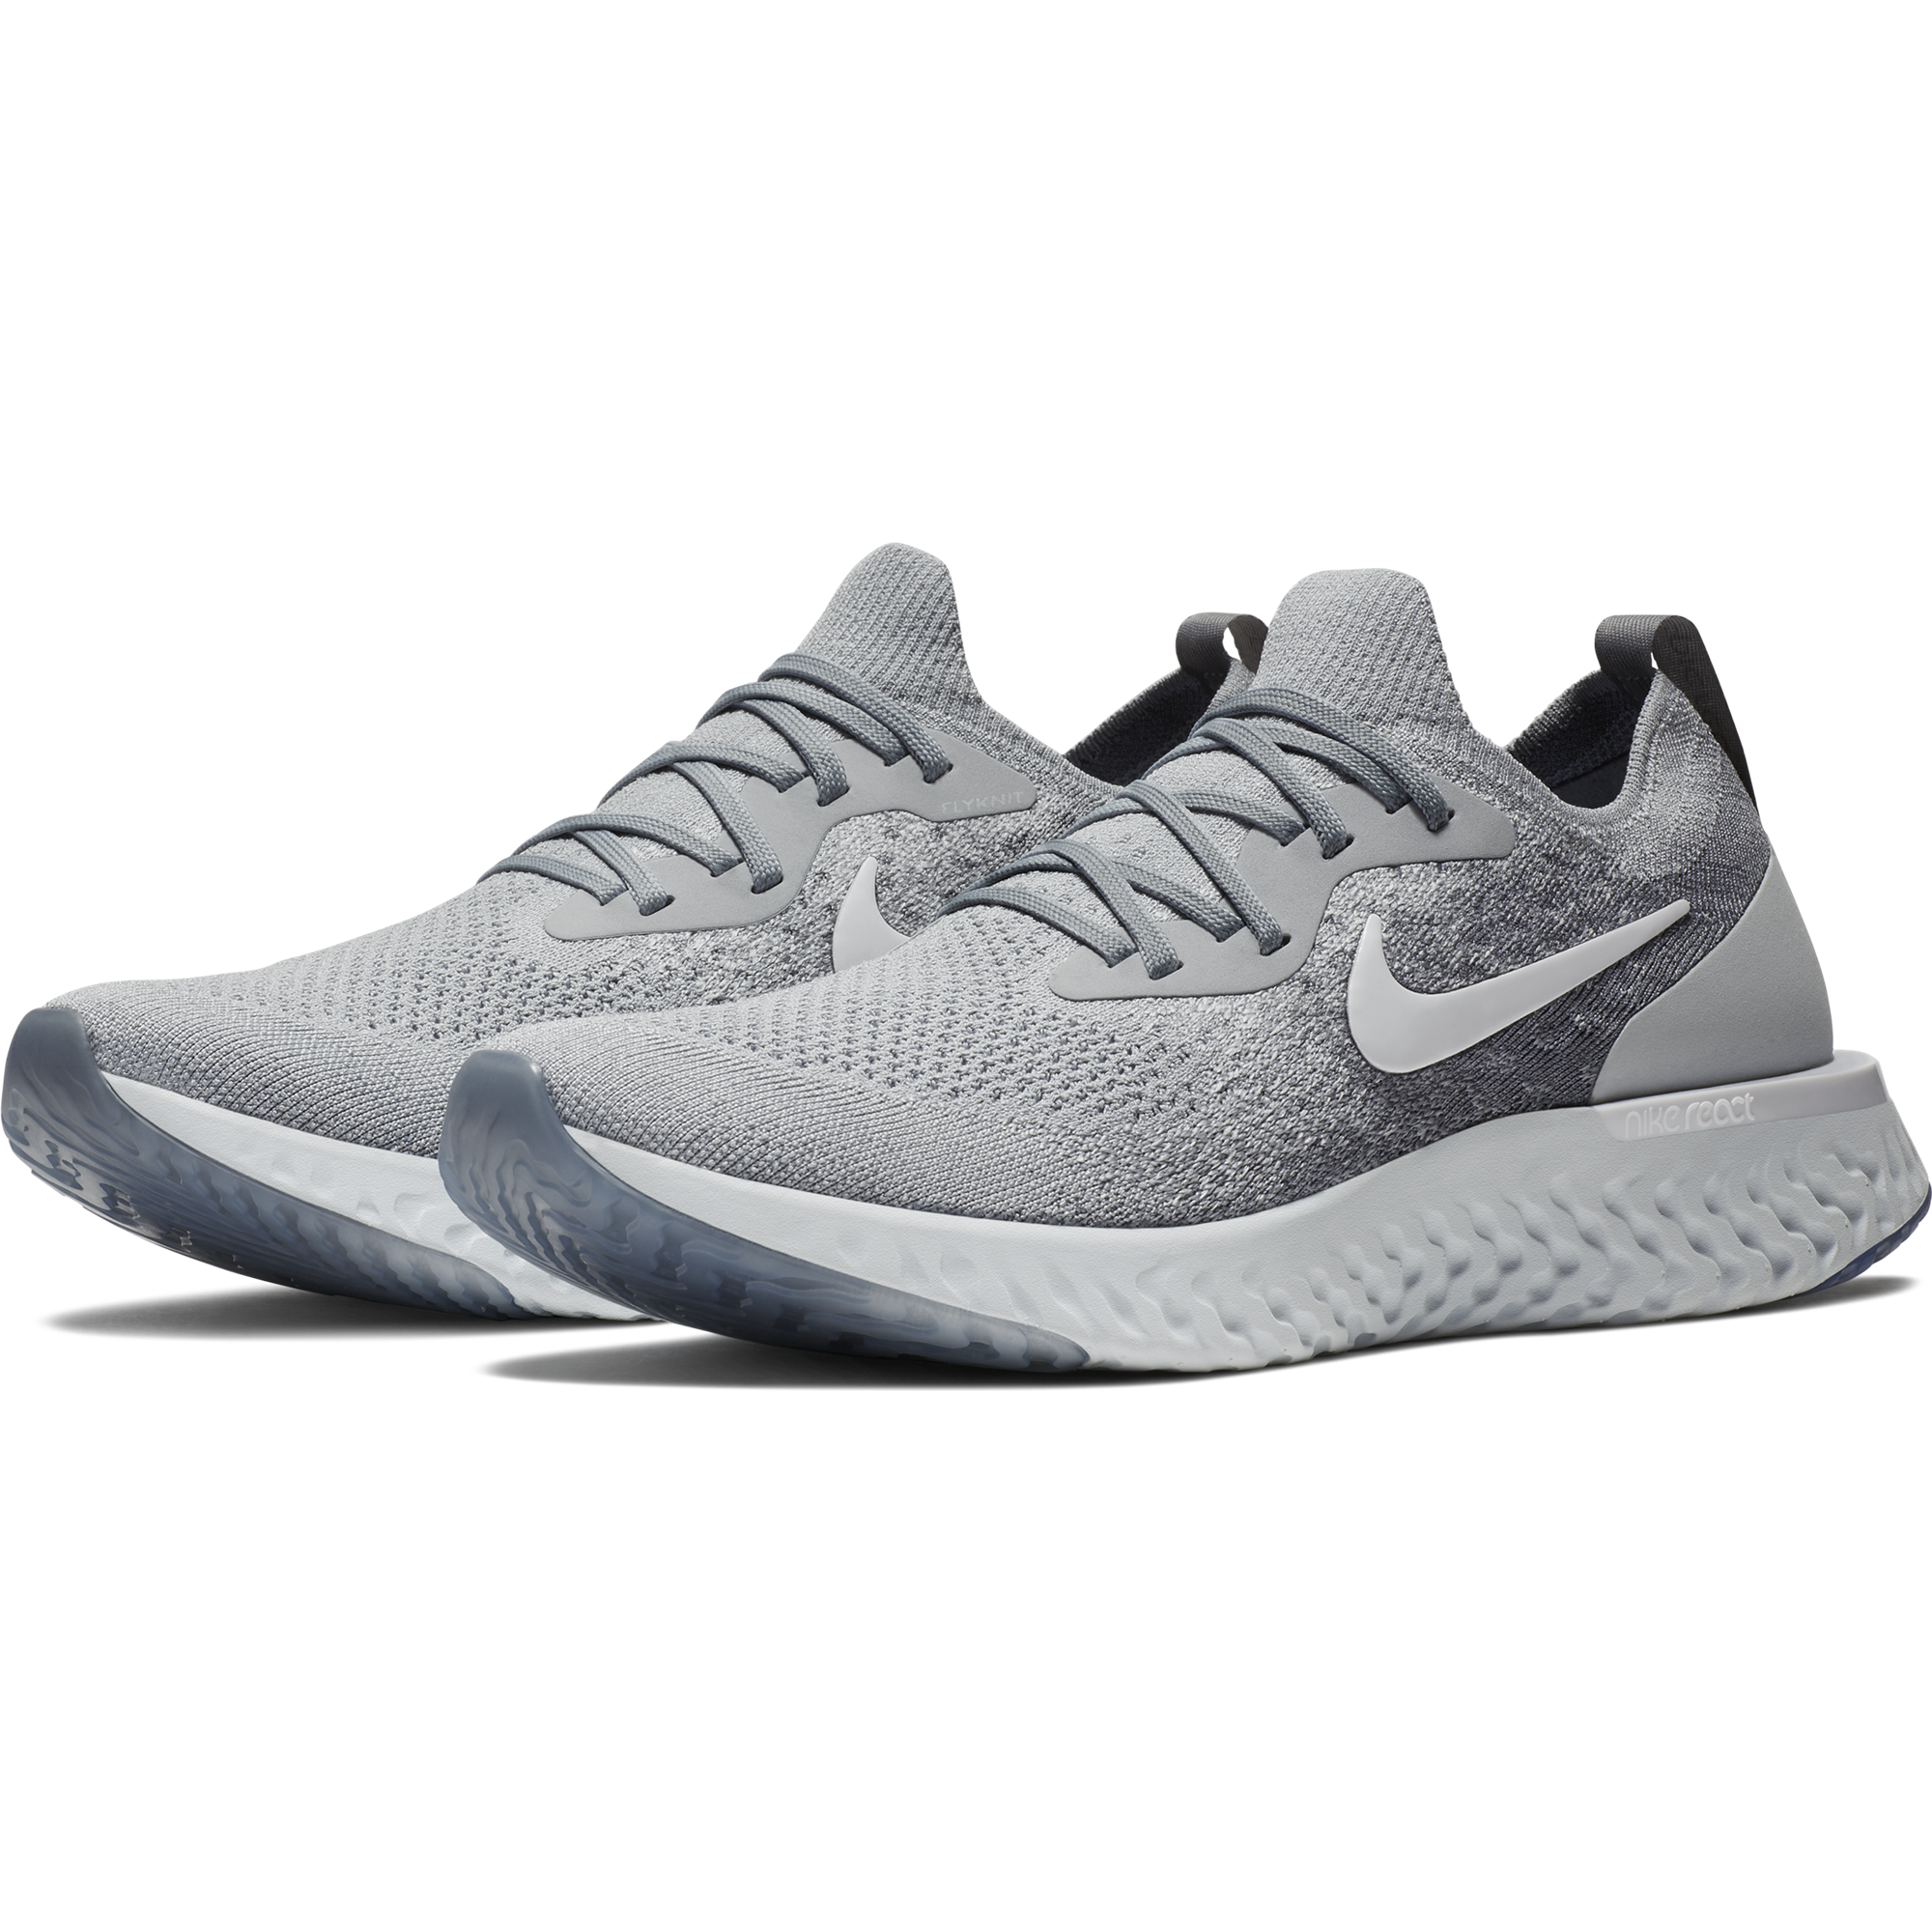 eb9e23ff2001 ... Men s Epic React Flyknit Running Shoe - Wolf Grey White Cool Grey Pure  ...